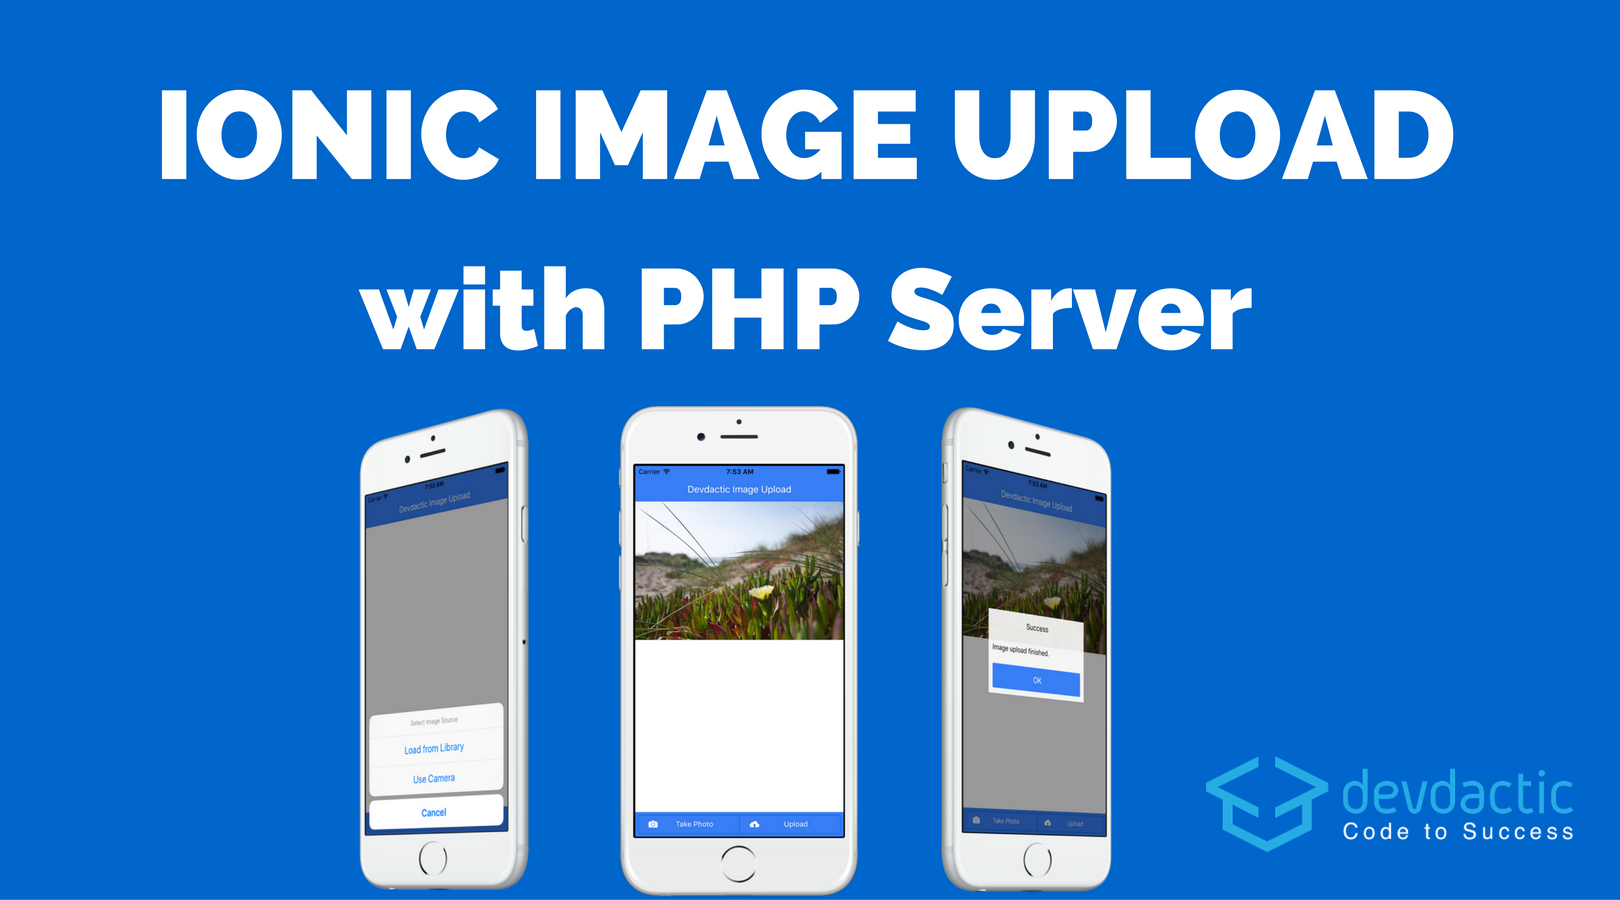 Facebook rolls out photo sync to Android and iPhone users Android take photo and upload to server